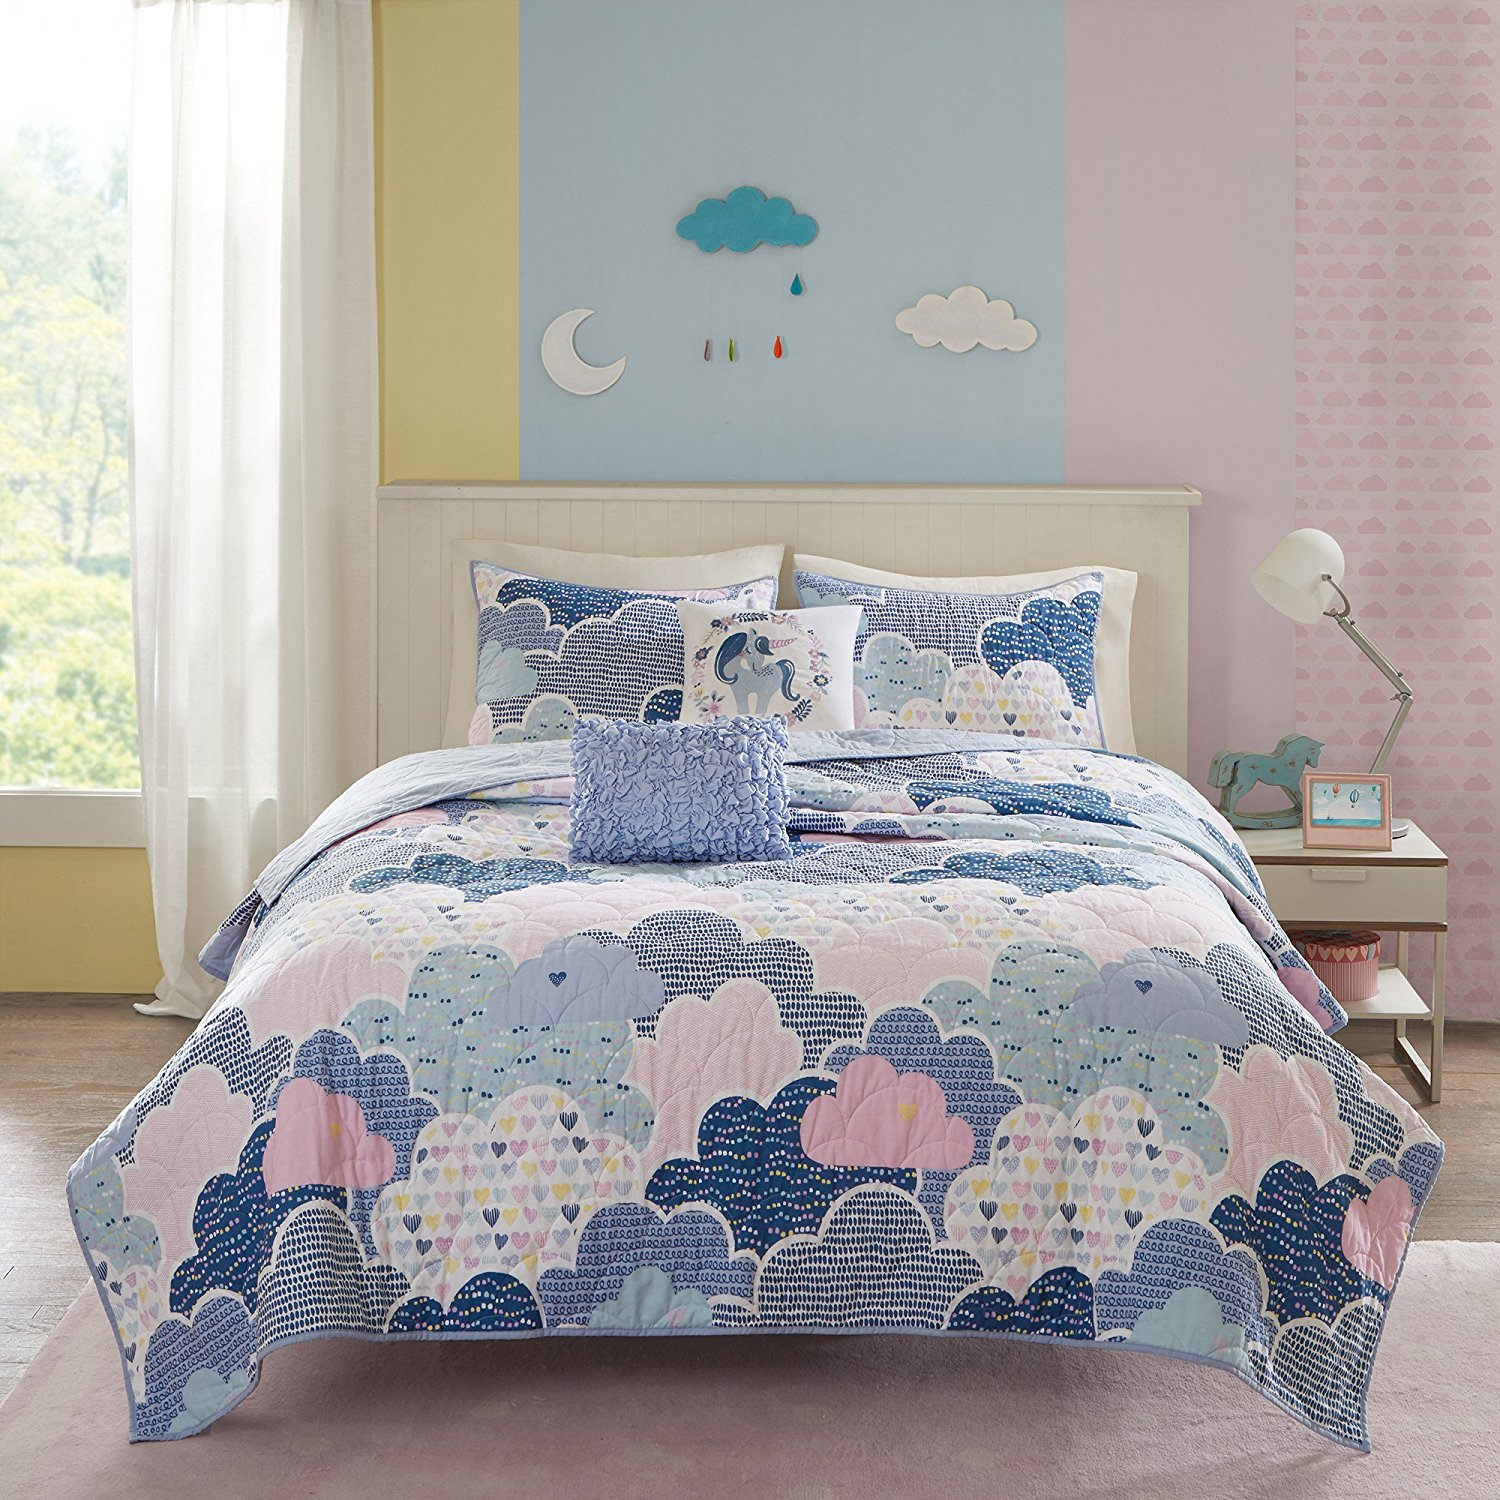 D&H 4 Piece Girls Grey Purple Pink Fluffy Cloud Coverlet Twin Twin Xl Set, Multi